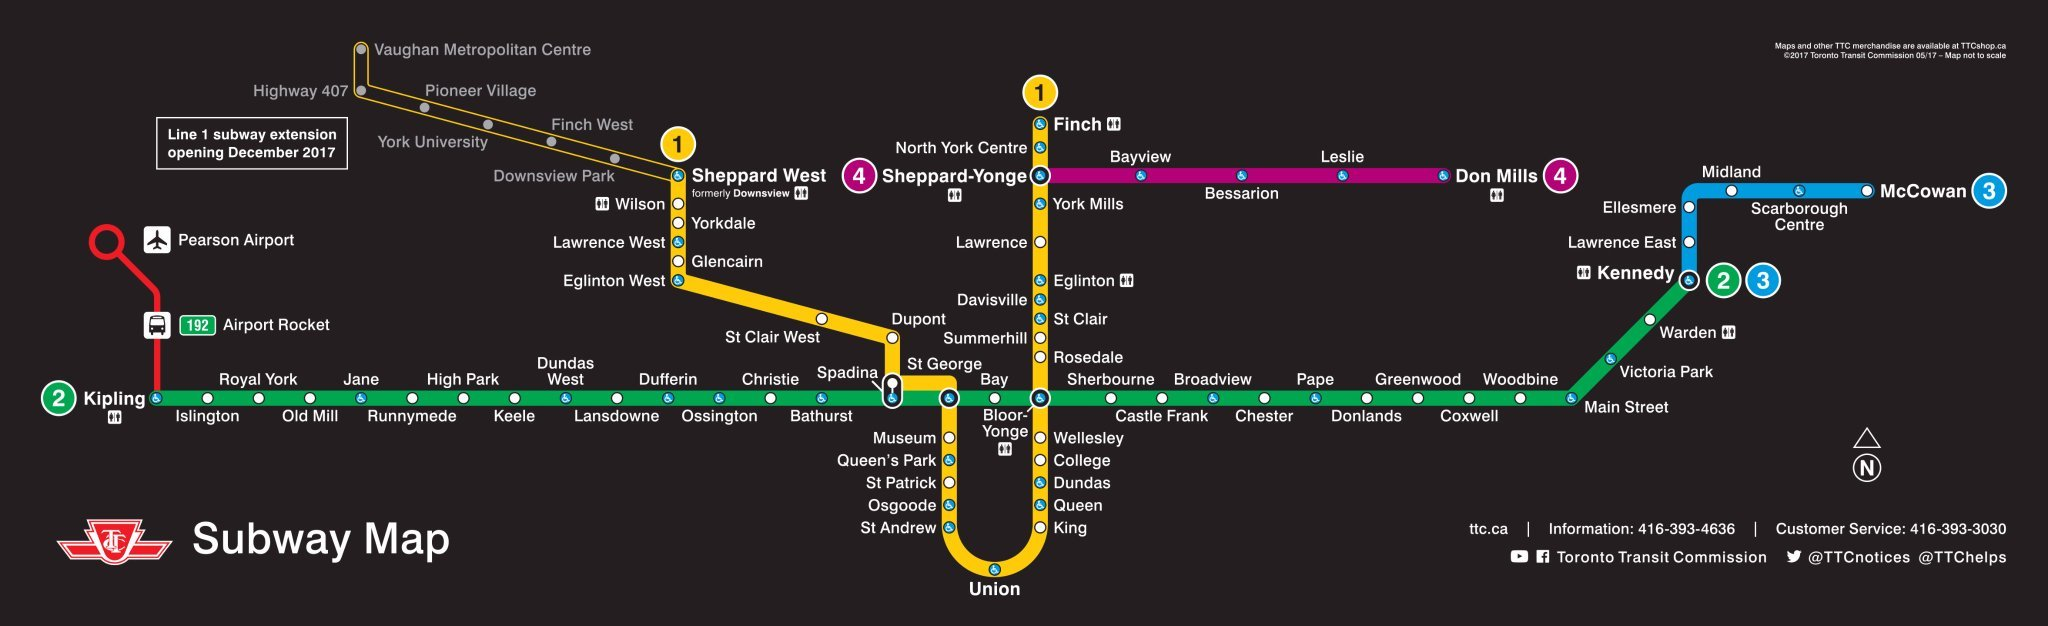 Ttc Subway Map 2025.Toronto 2025 2013 Home To Buy Page 2 City Data Forum